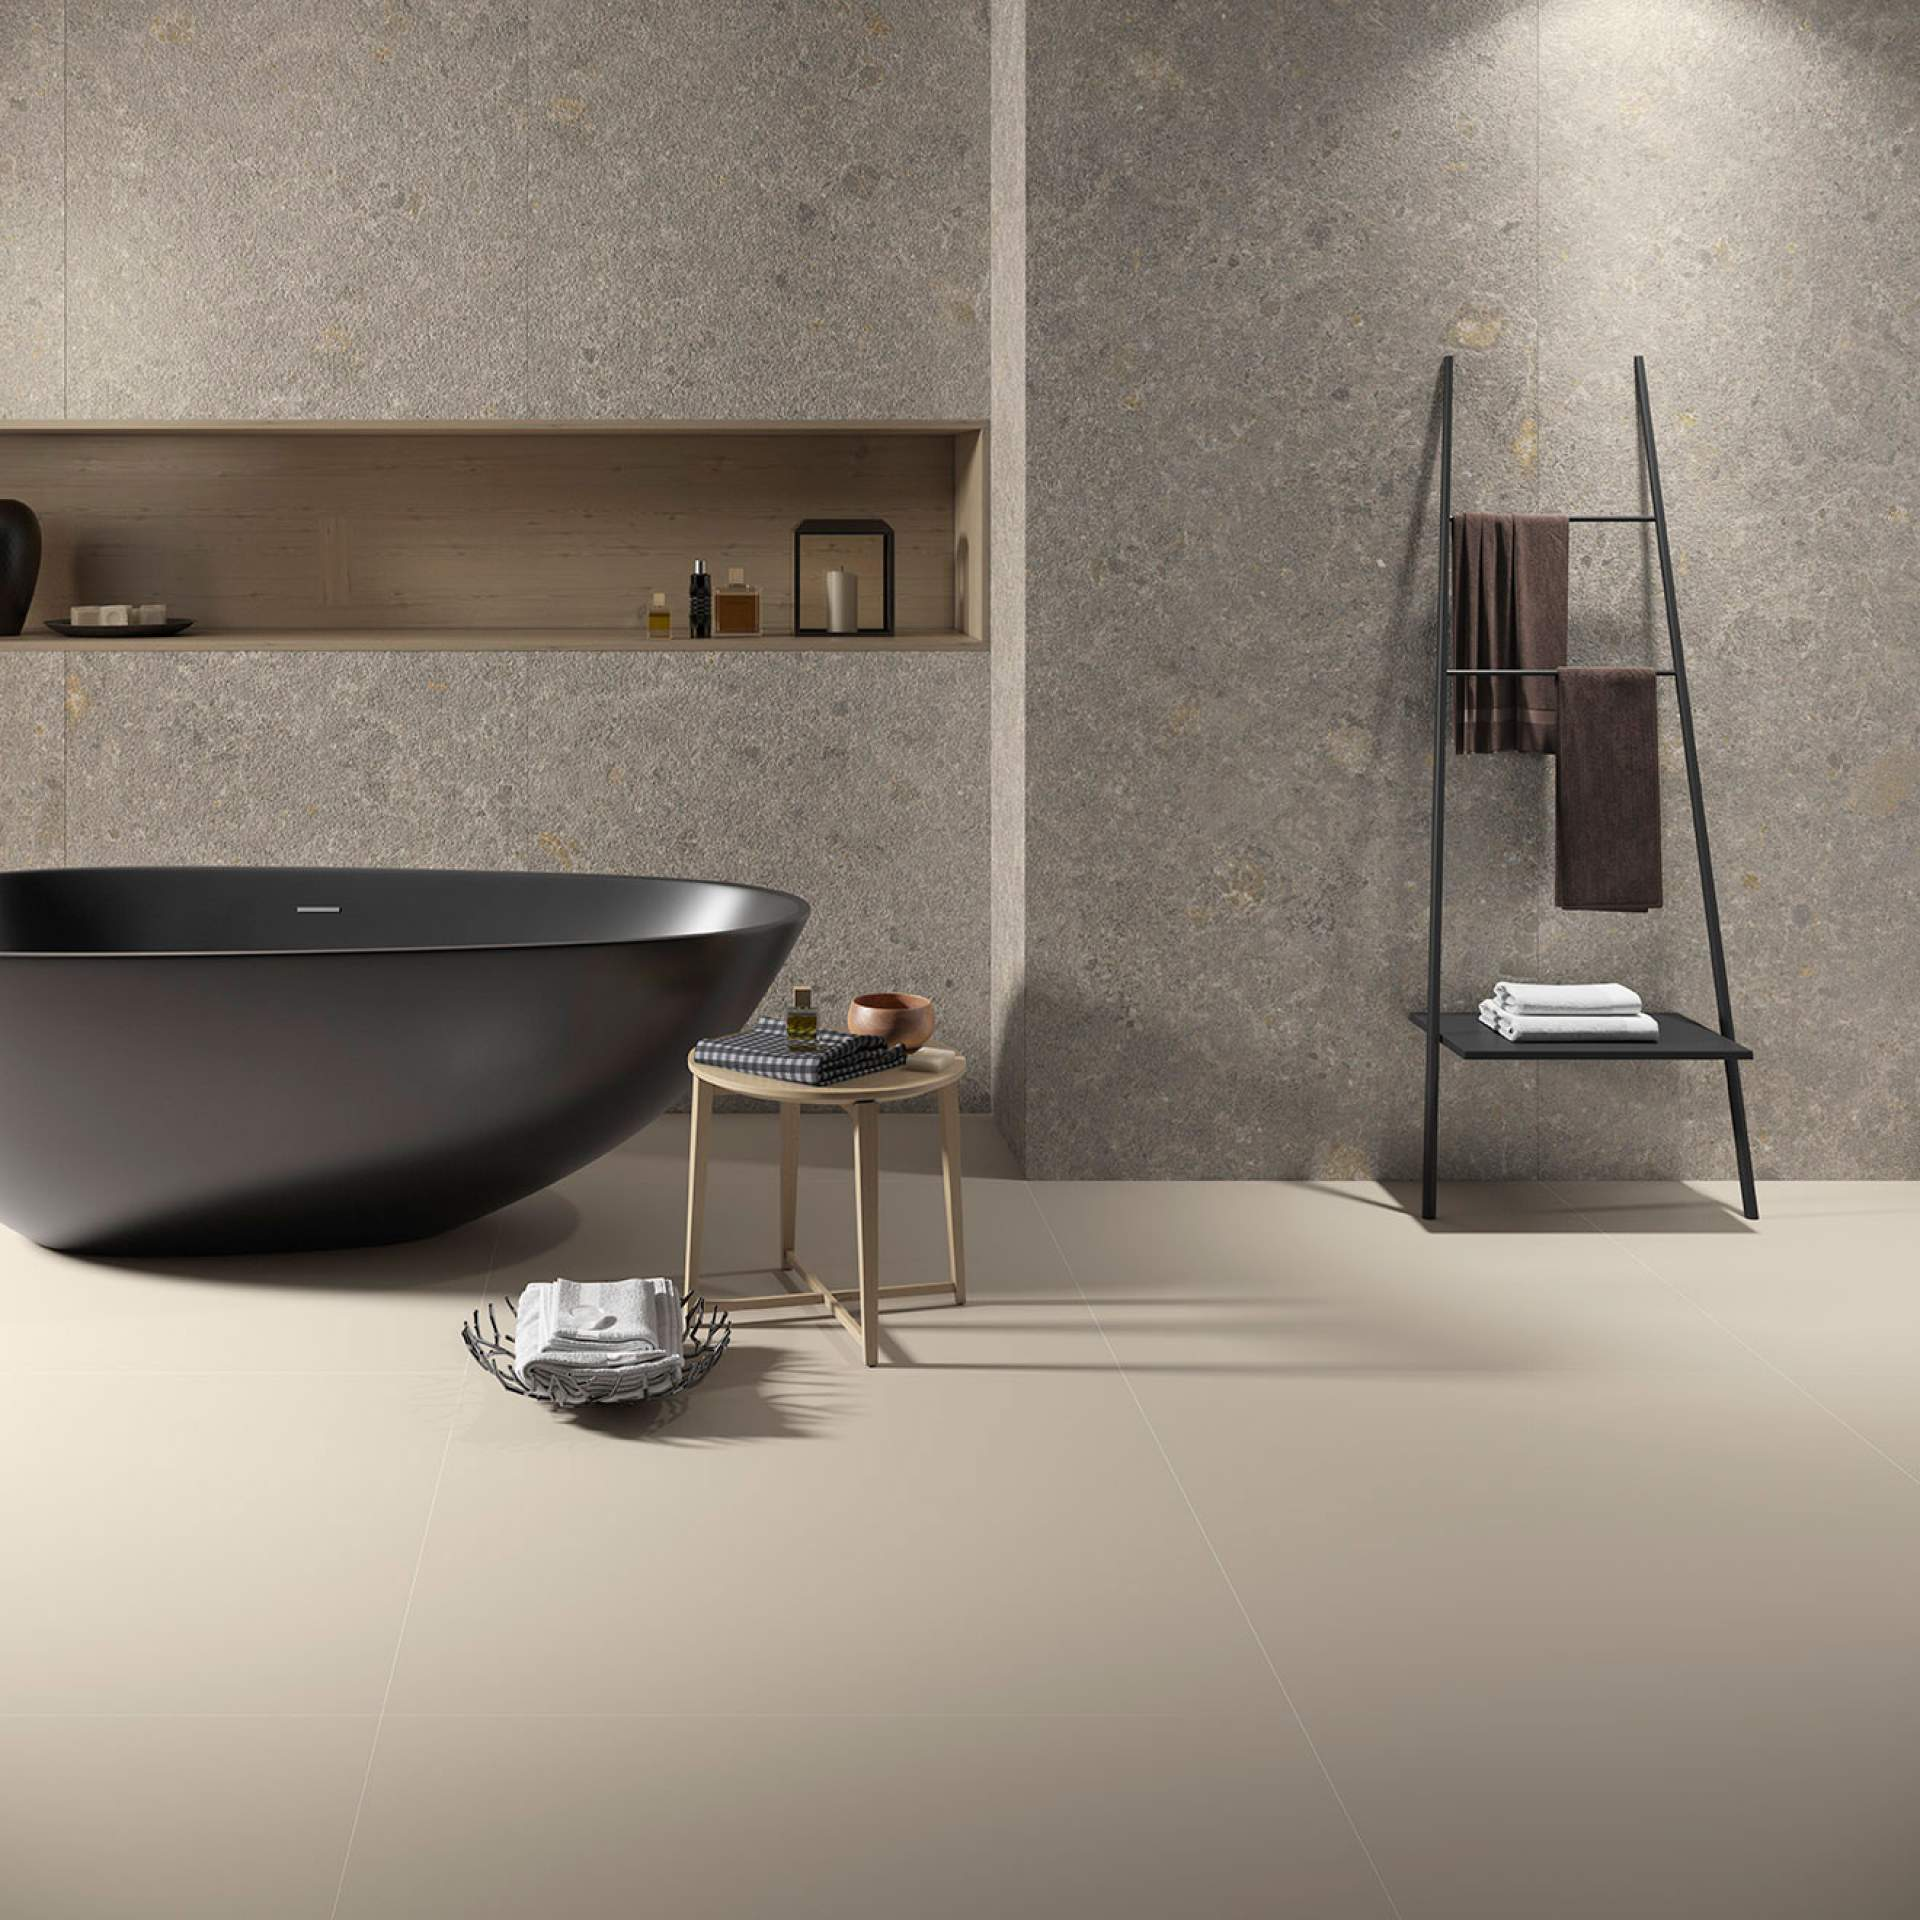 Solid Bathroom setting with Camel Tile